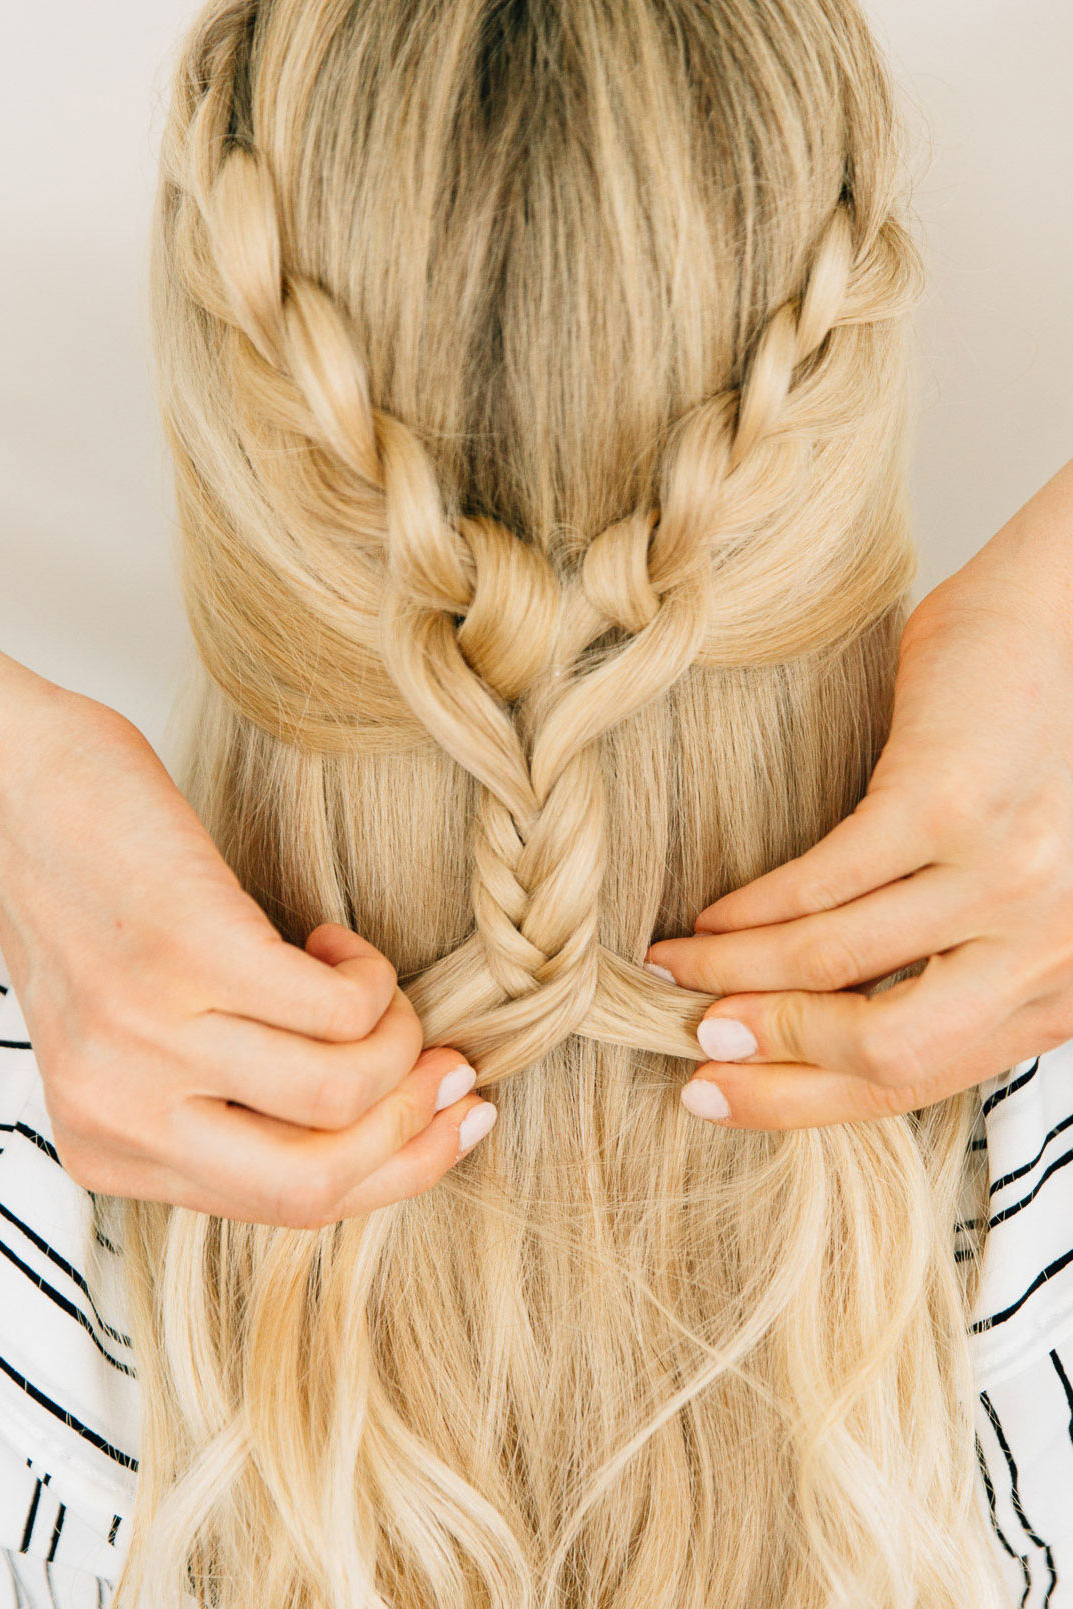 Beautiful Braid Hairstyles That'll Liven Up Your Hair Routine Regarding Trendy Curly Half Updo With Ponytail Braids (View 8 of 20)